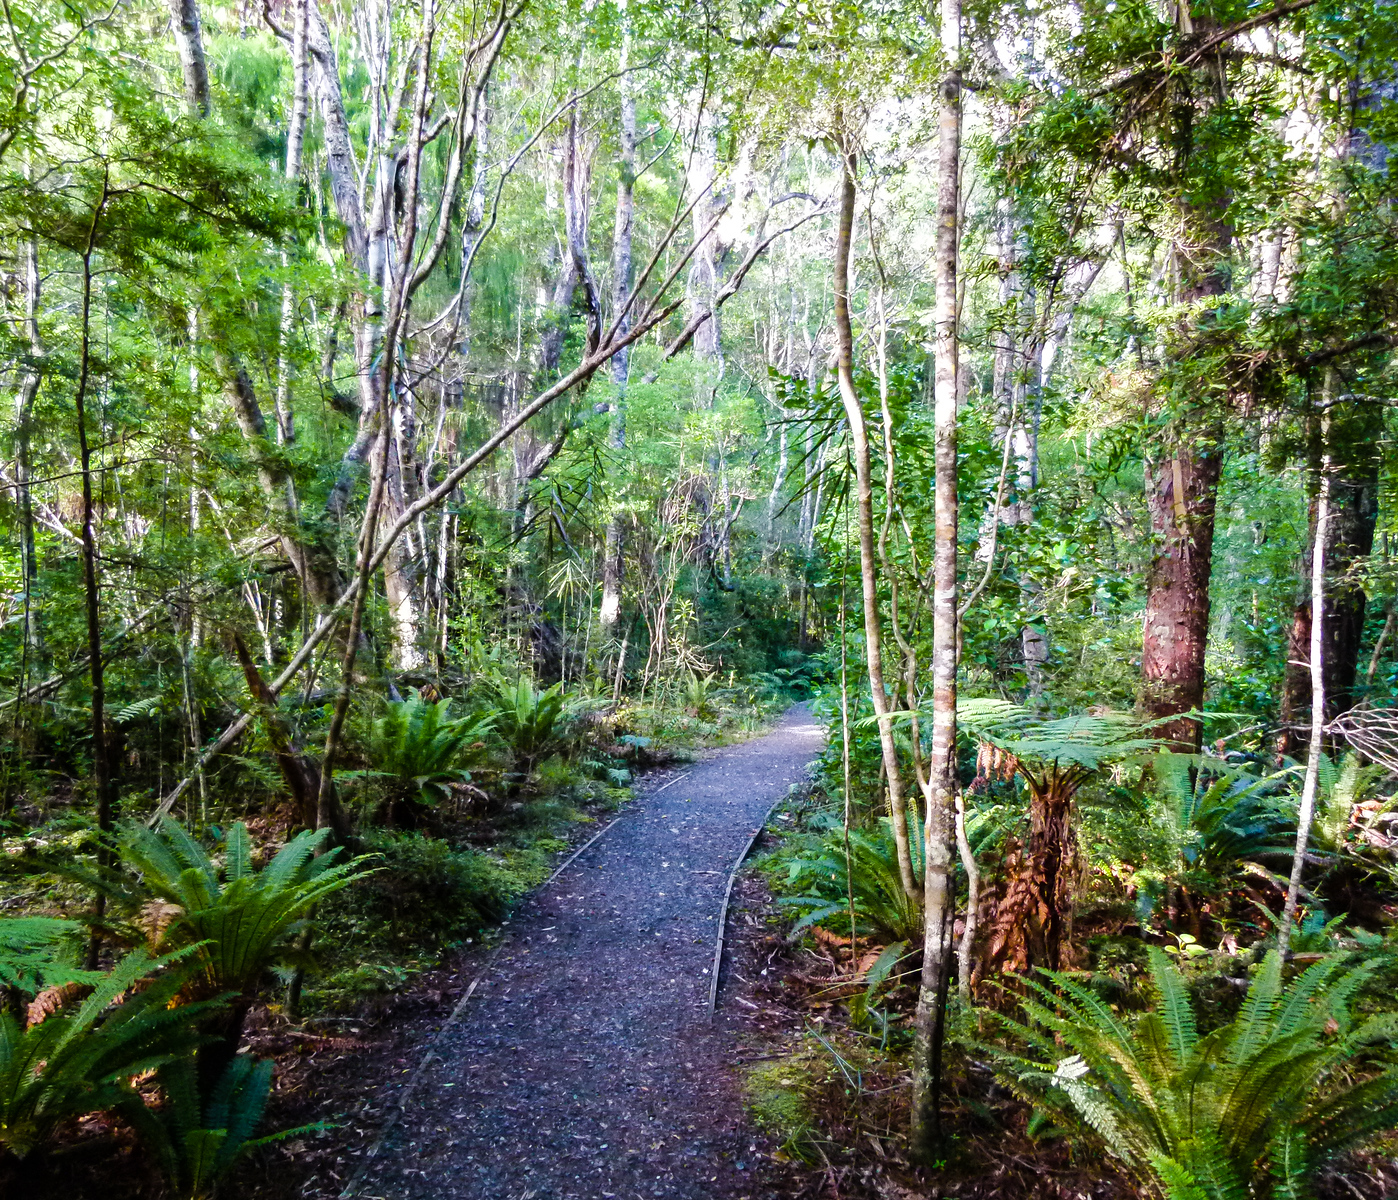 On an Ulva Island guided walk, a path winds through the temperate rainforest thick with an understory of green ferns.